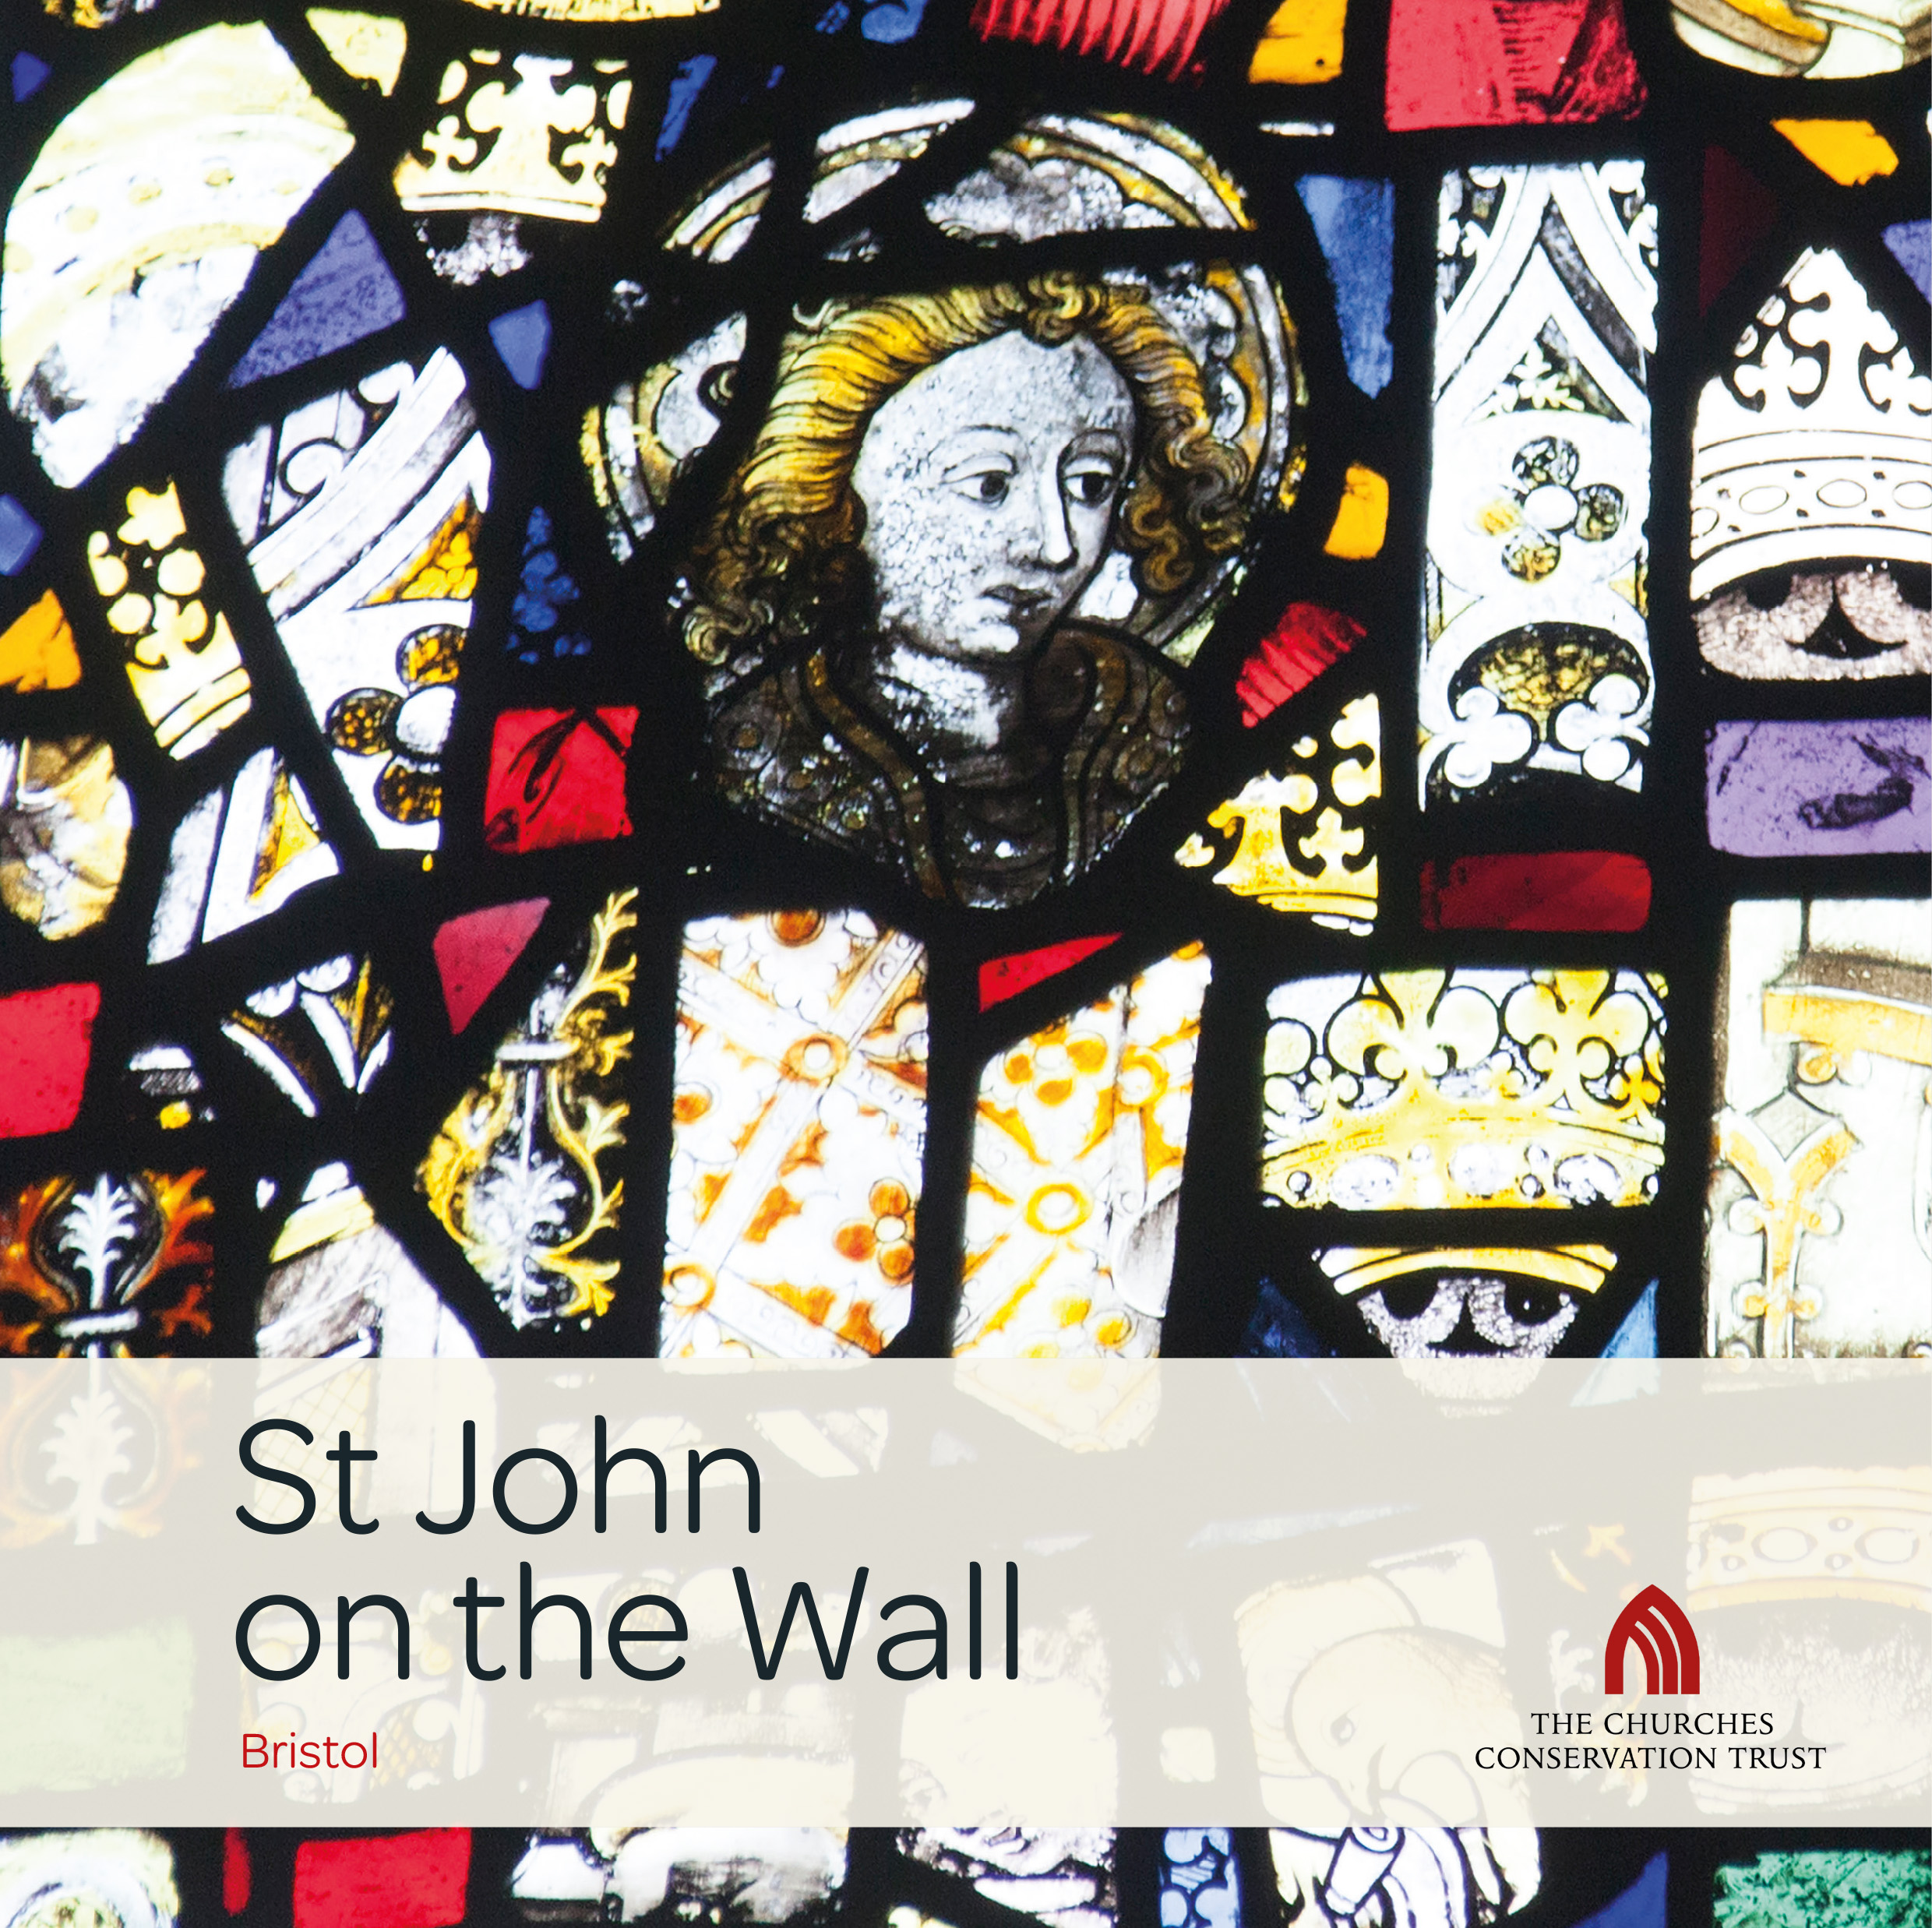 St John on the Wall, Bristol